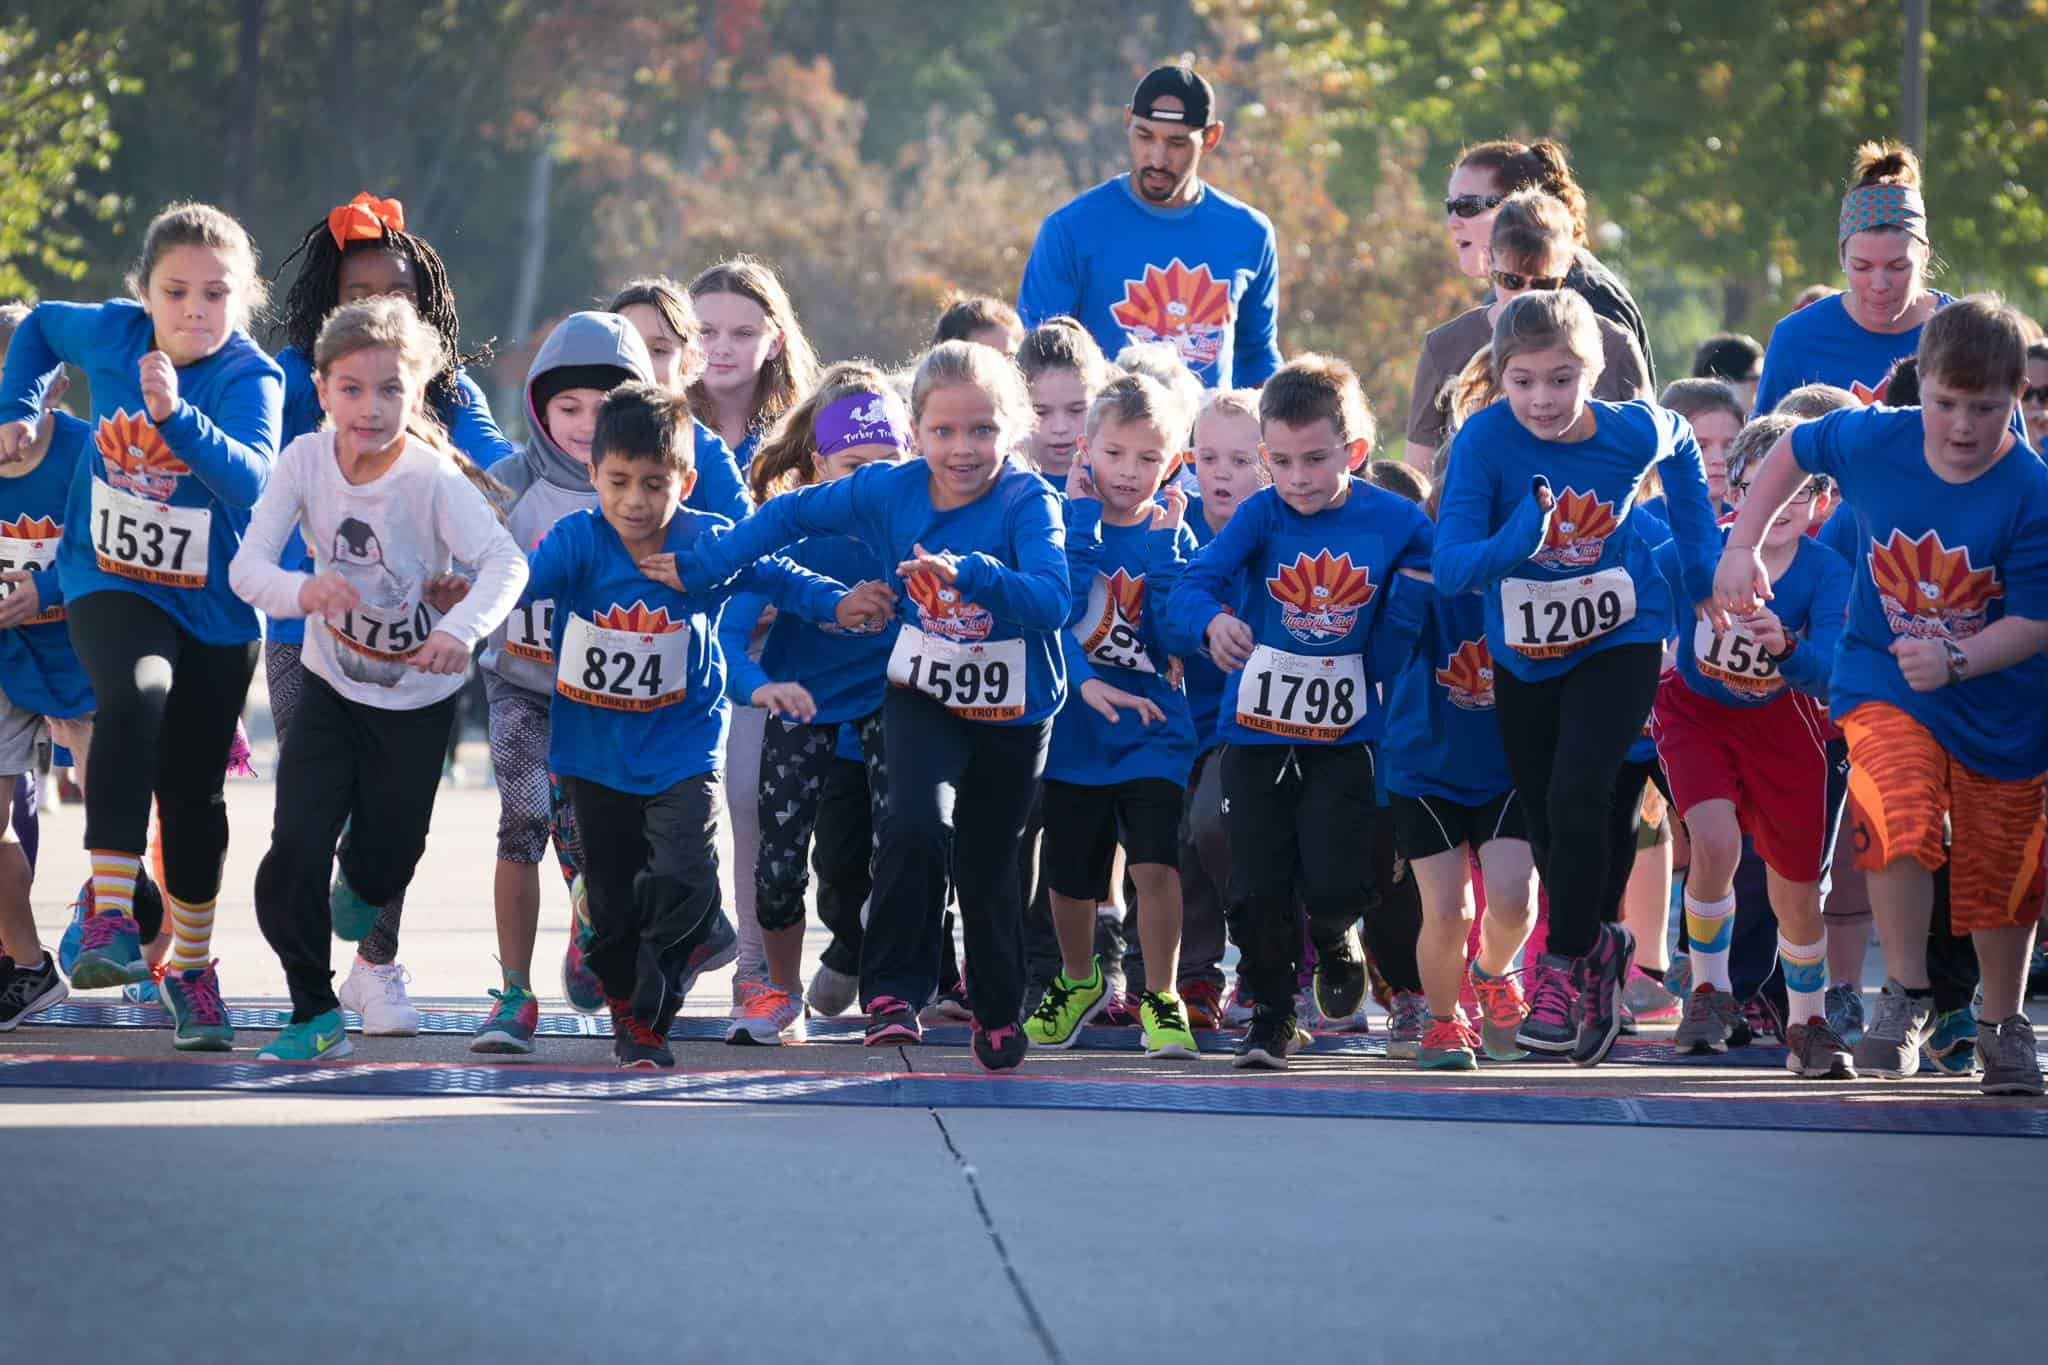 a4570d 67aa501013594fc181cff456338d8c55 mv2 d 2048 1365 s 2 - We Can't Wait to See You At the Tyler Turkey Trot!